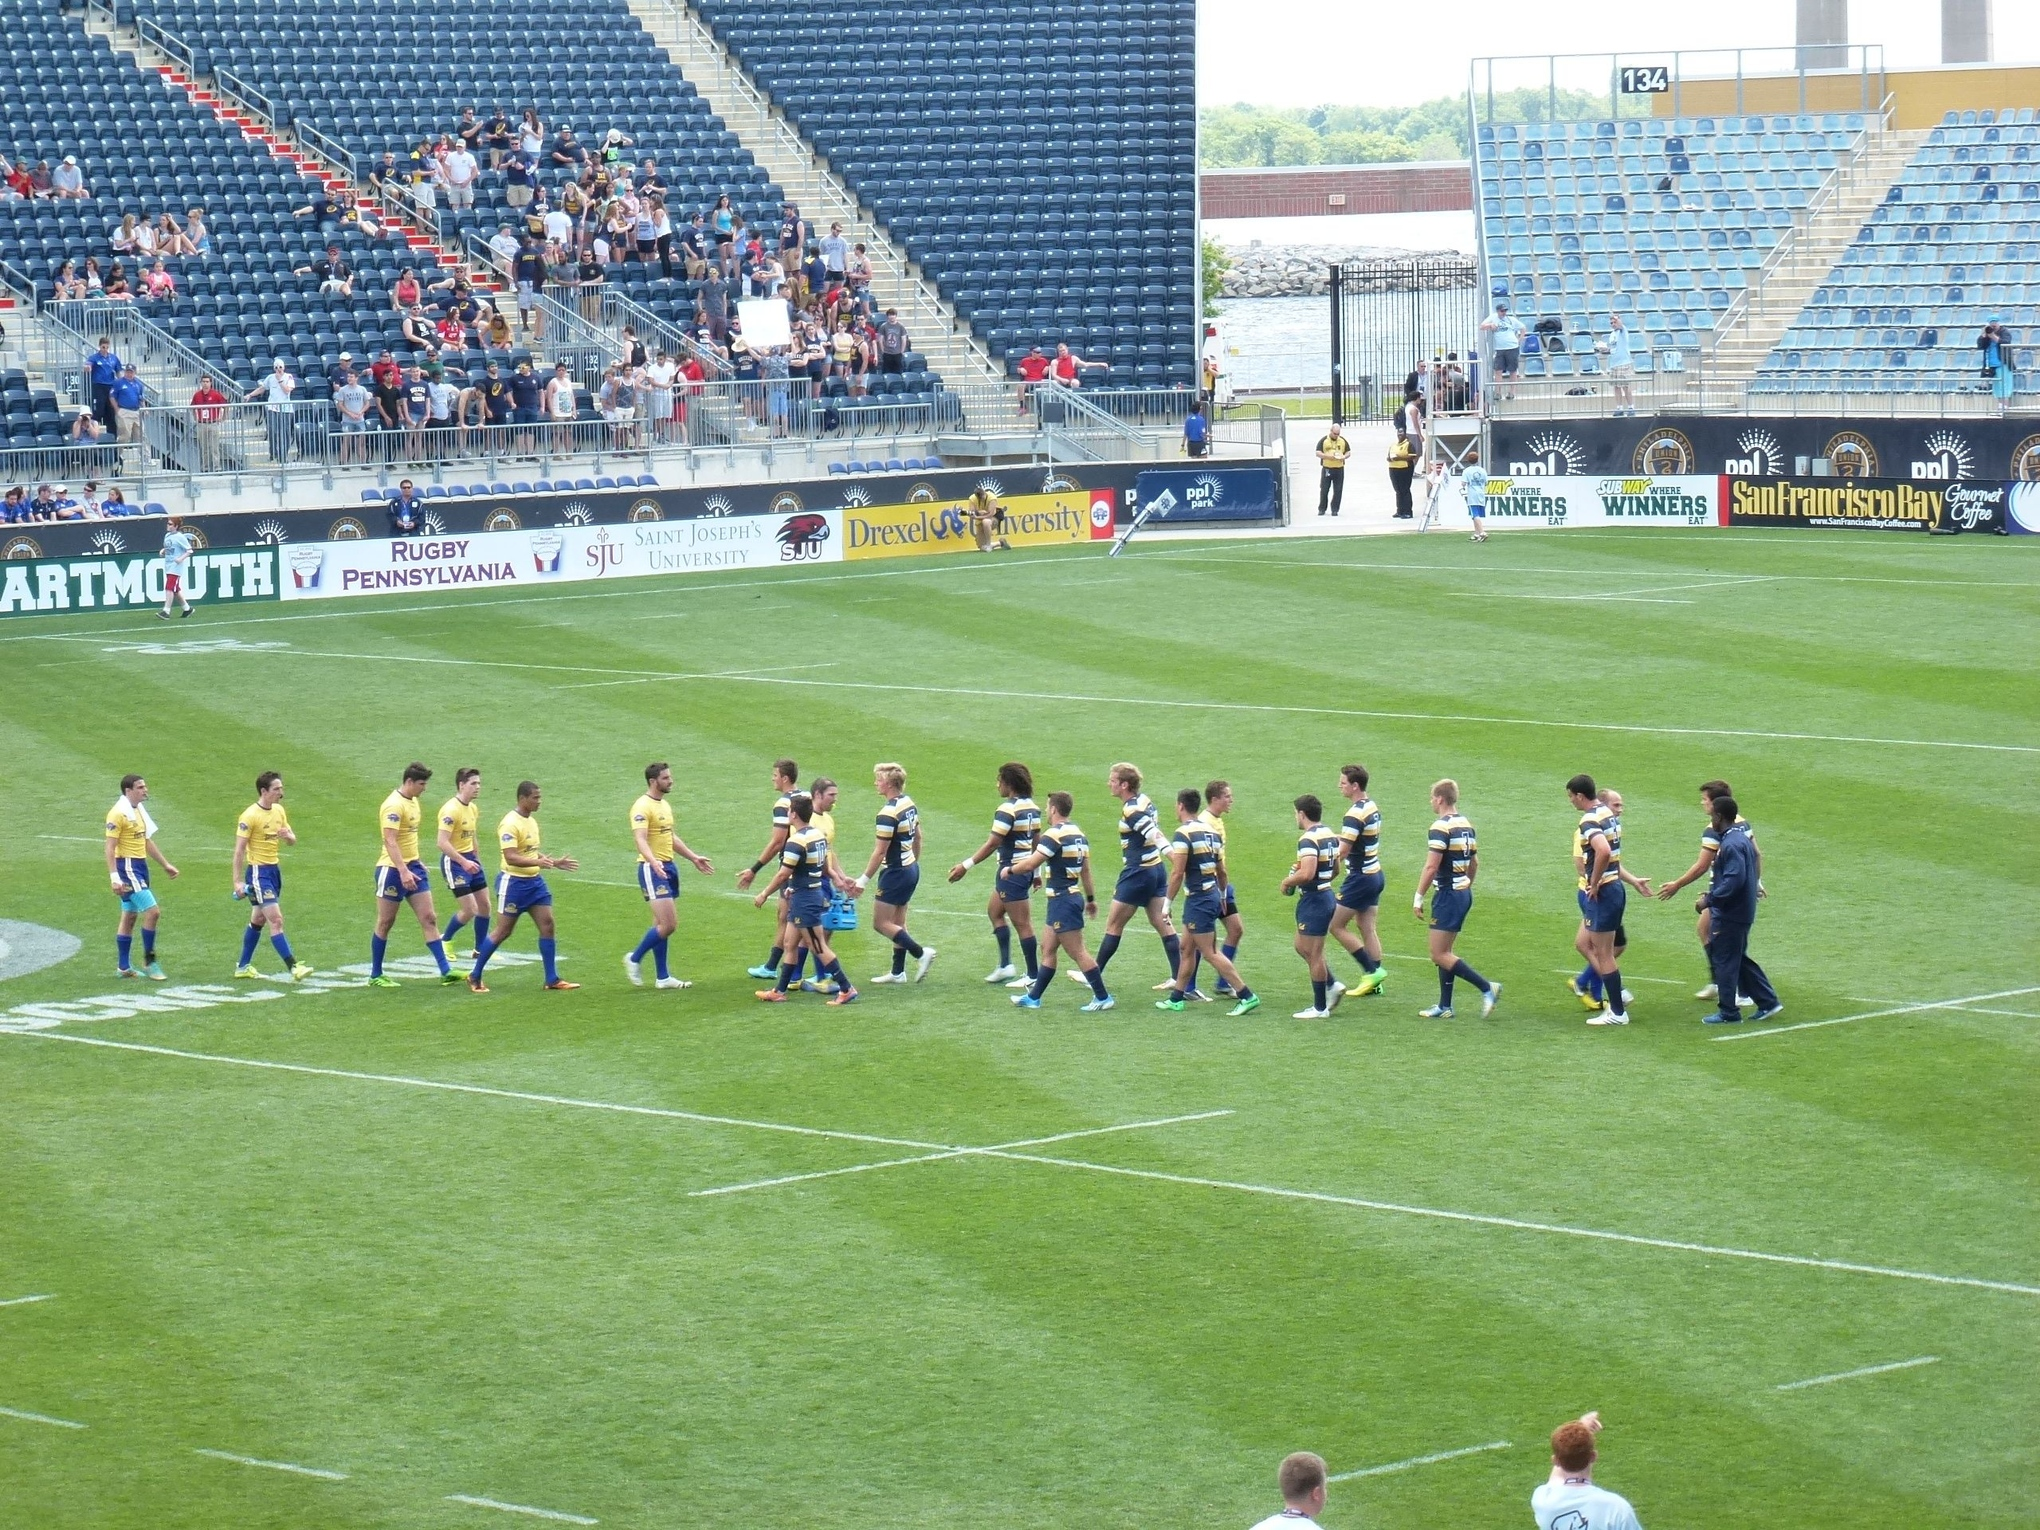 cal rugby wins collegiate rugby sevens championships photo p1130586 bears beat drexel medium